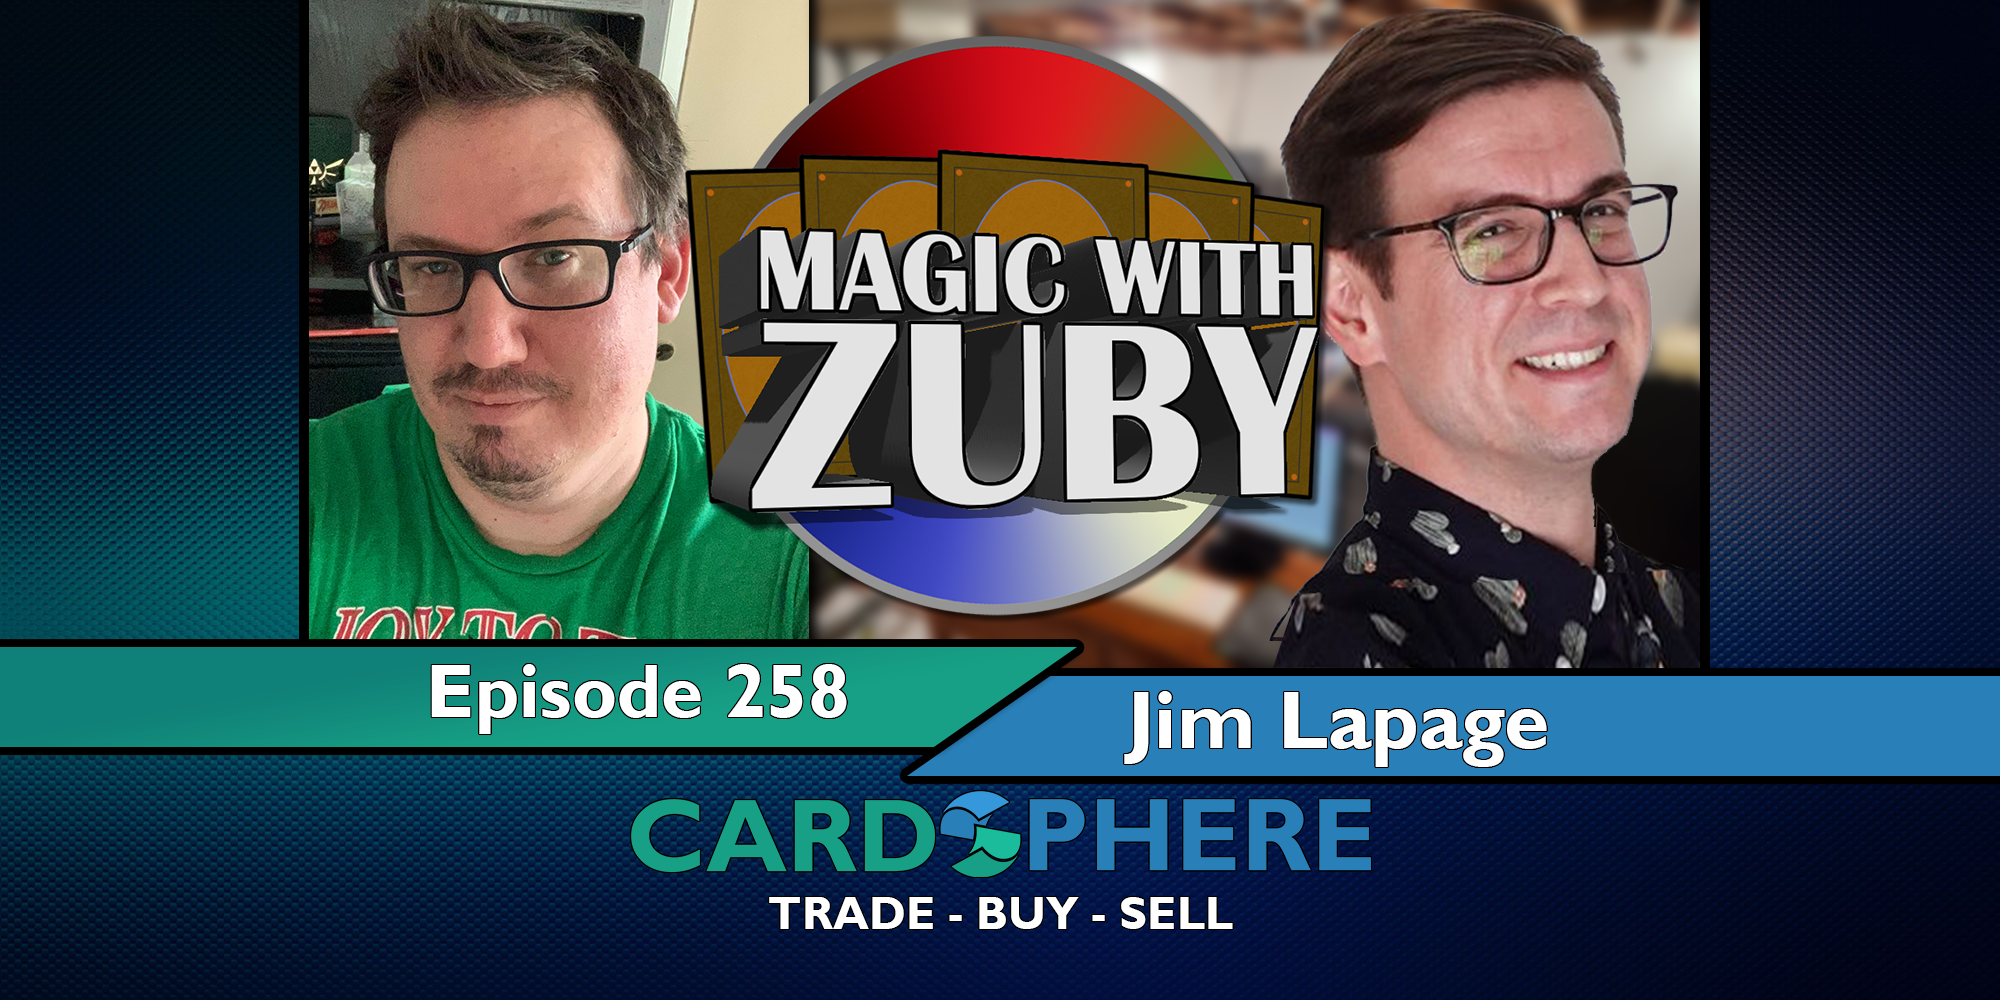 Magic With Zuby Episode 258 - Jim Lapage, from The Spike Feeders